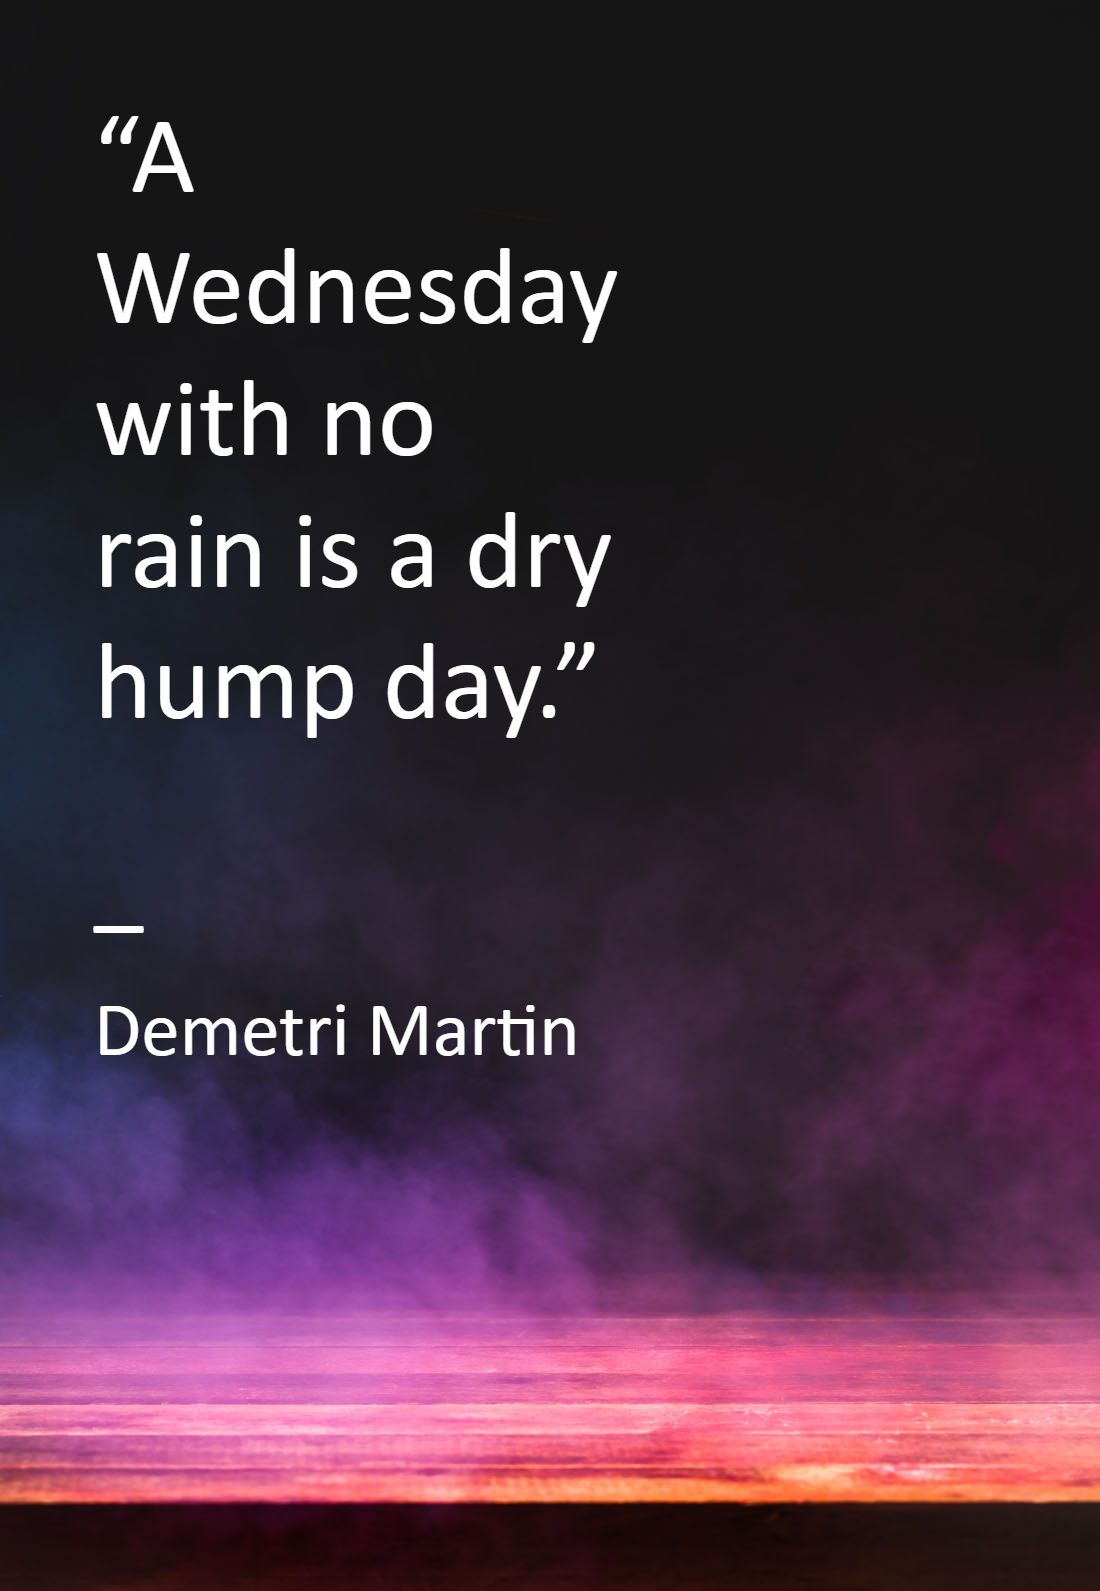 Its Hump Day Quotes